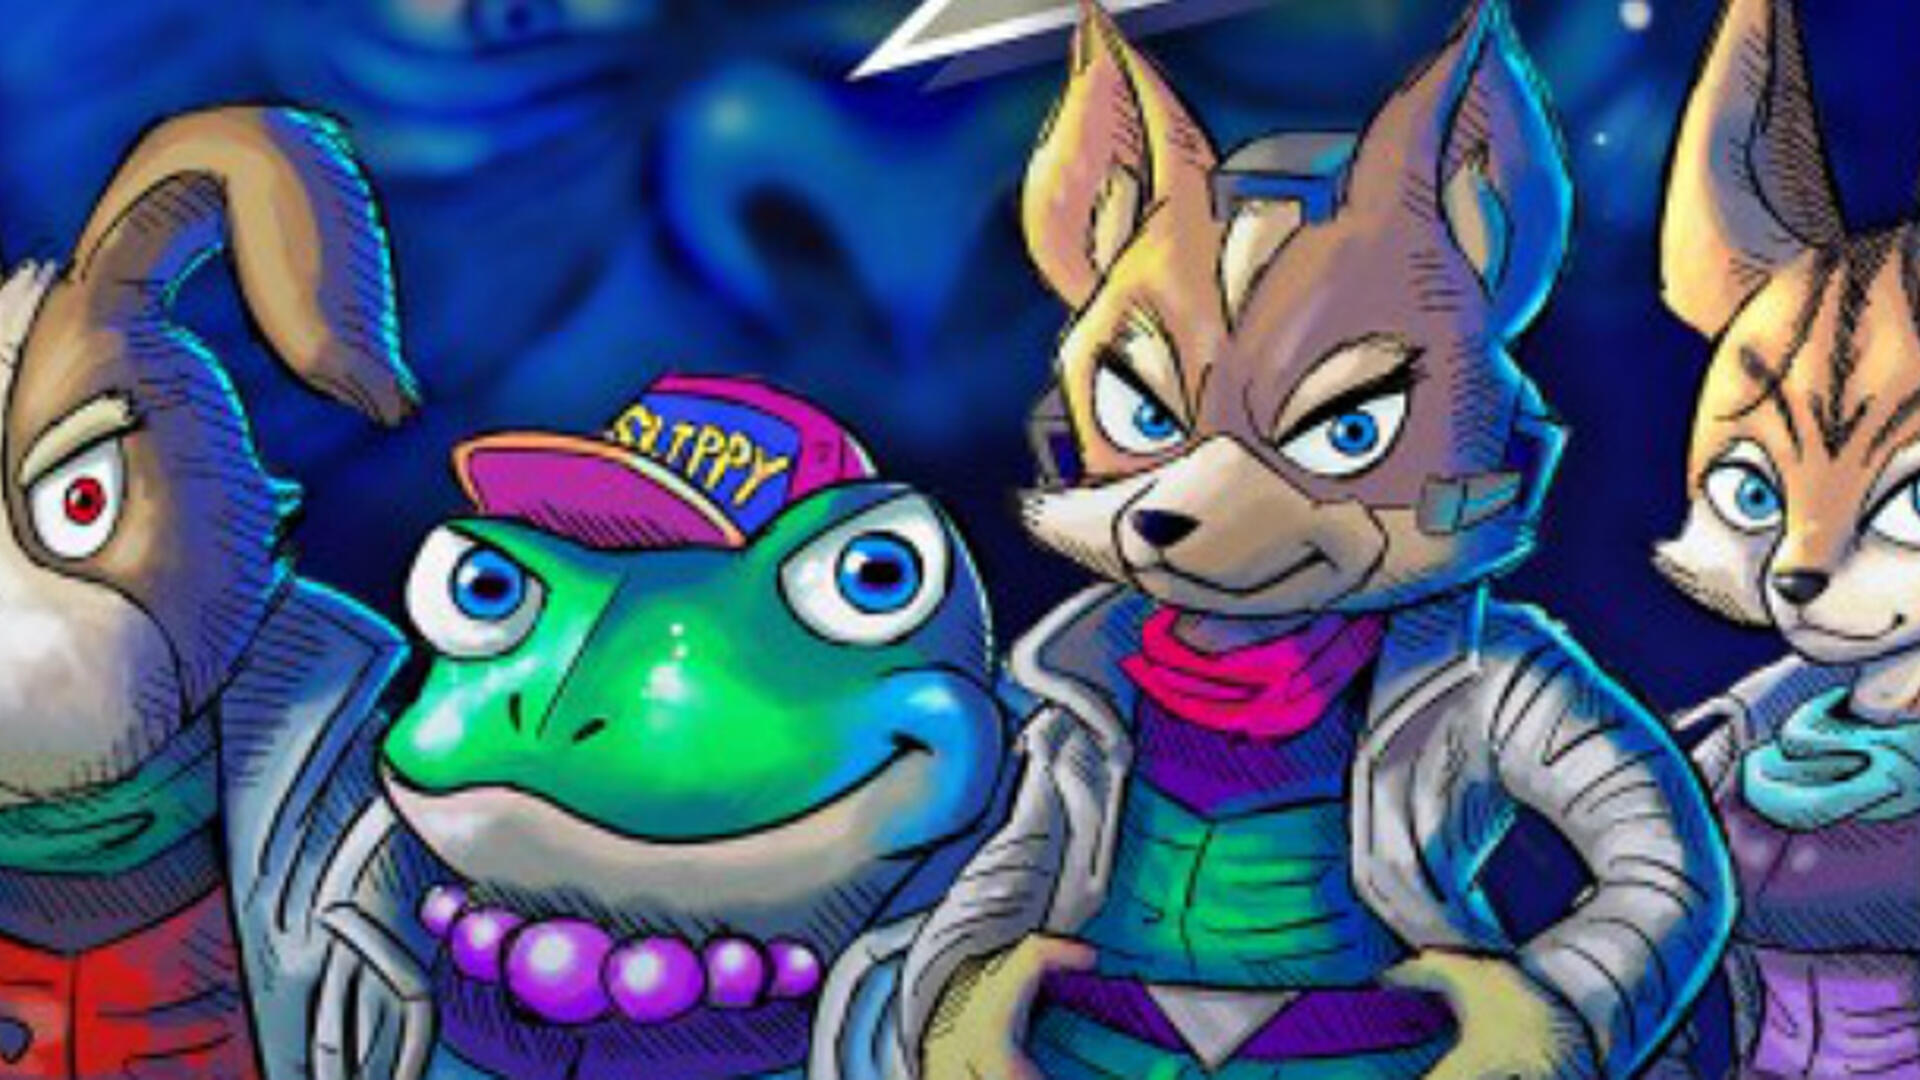 Read the Entire Star Fox Comic Published in Nintendo Power in the '90s Here